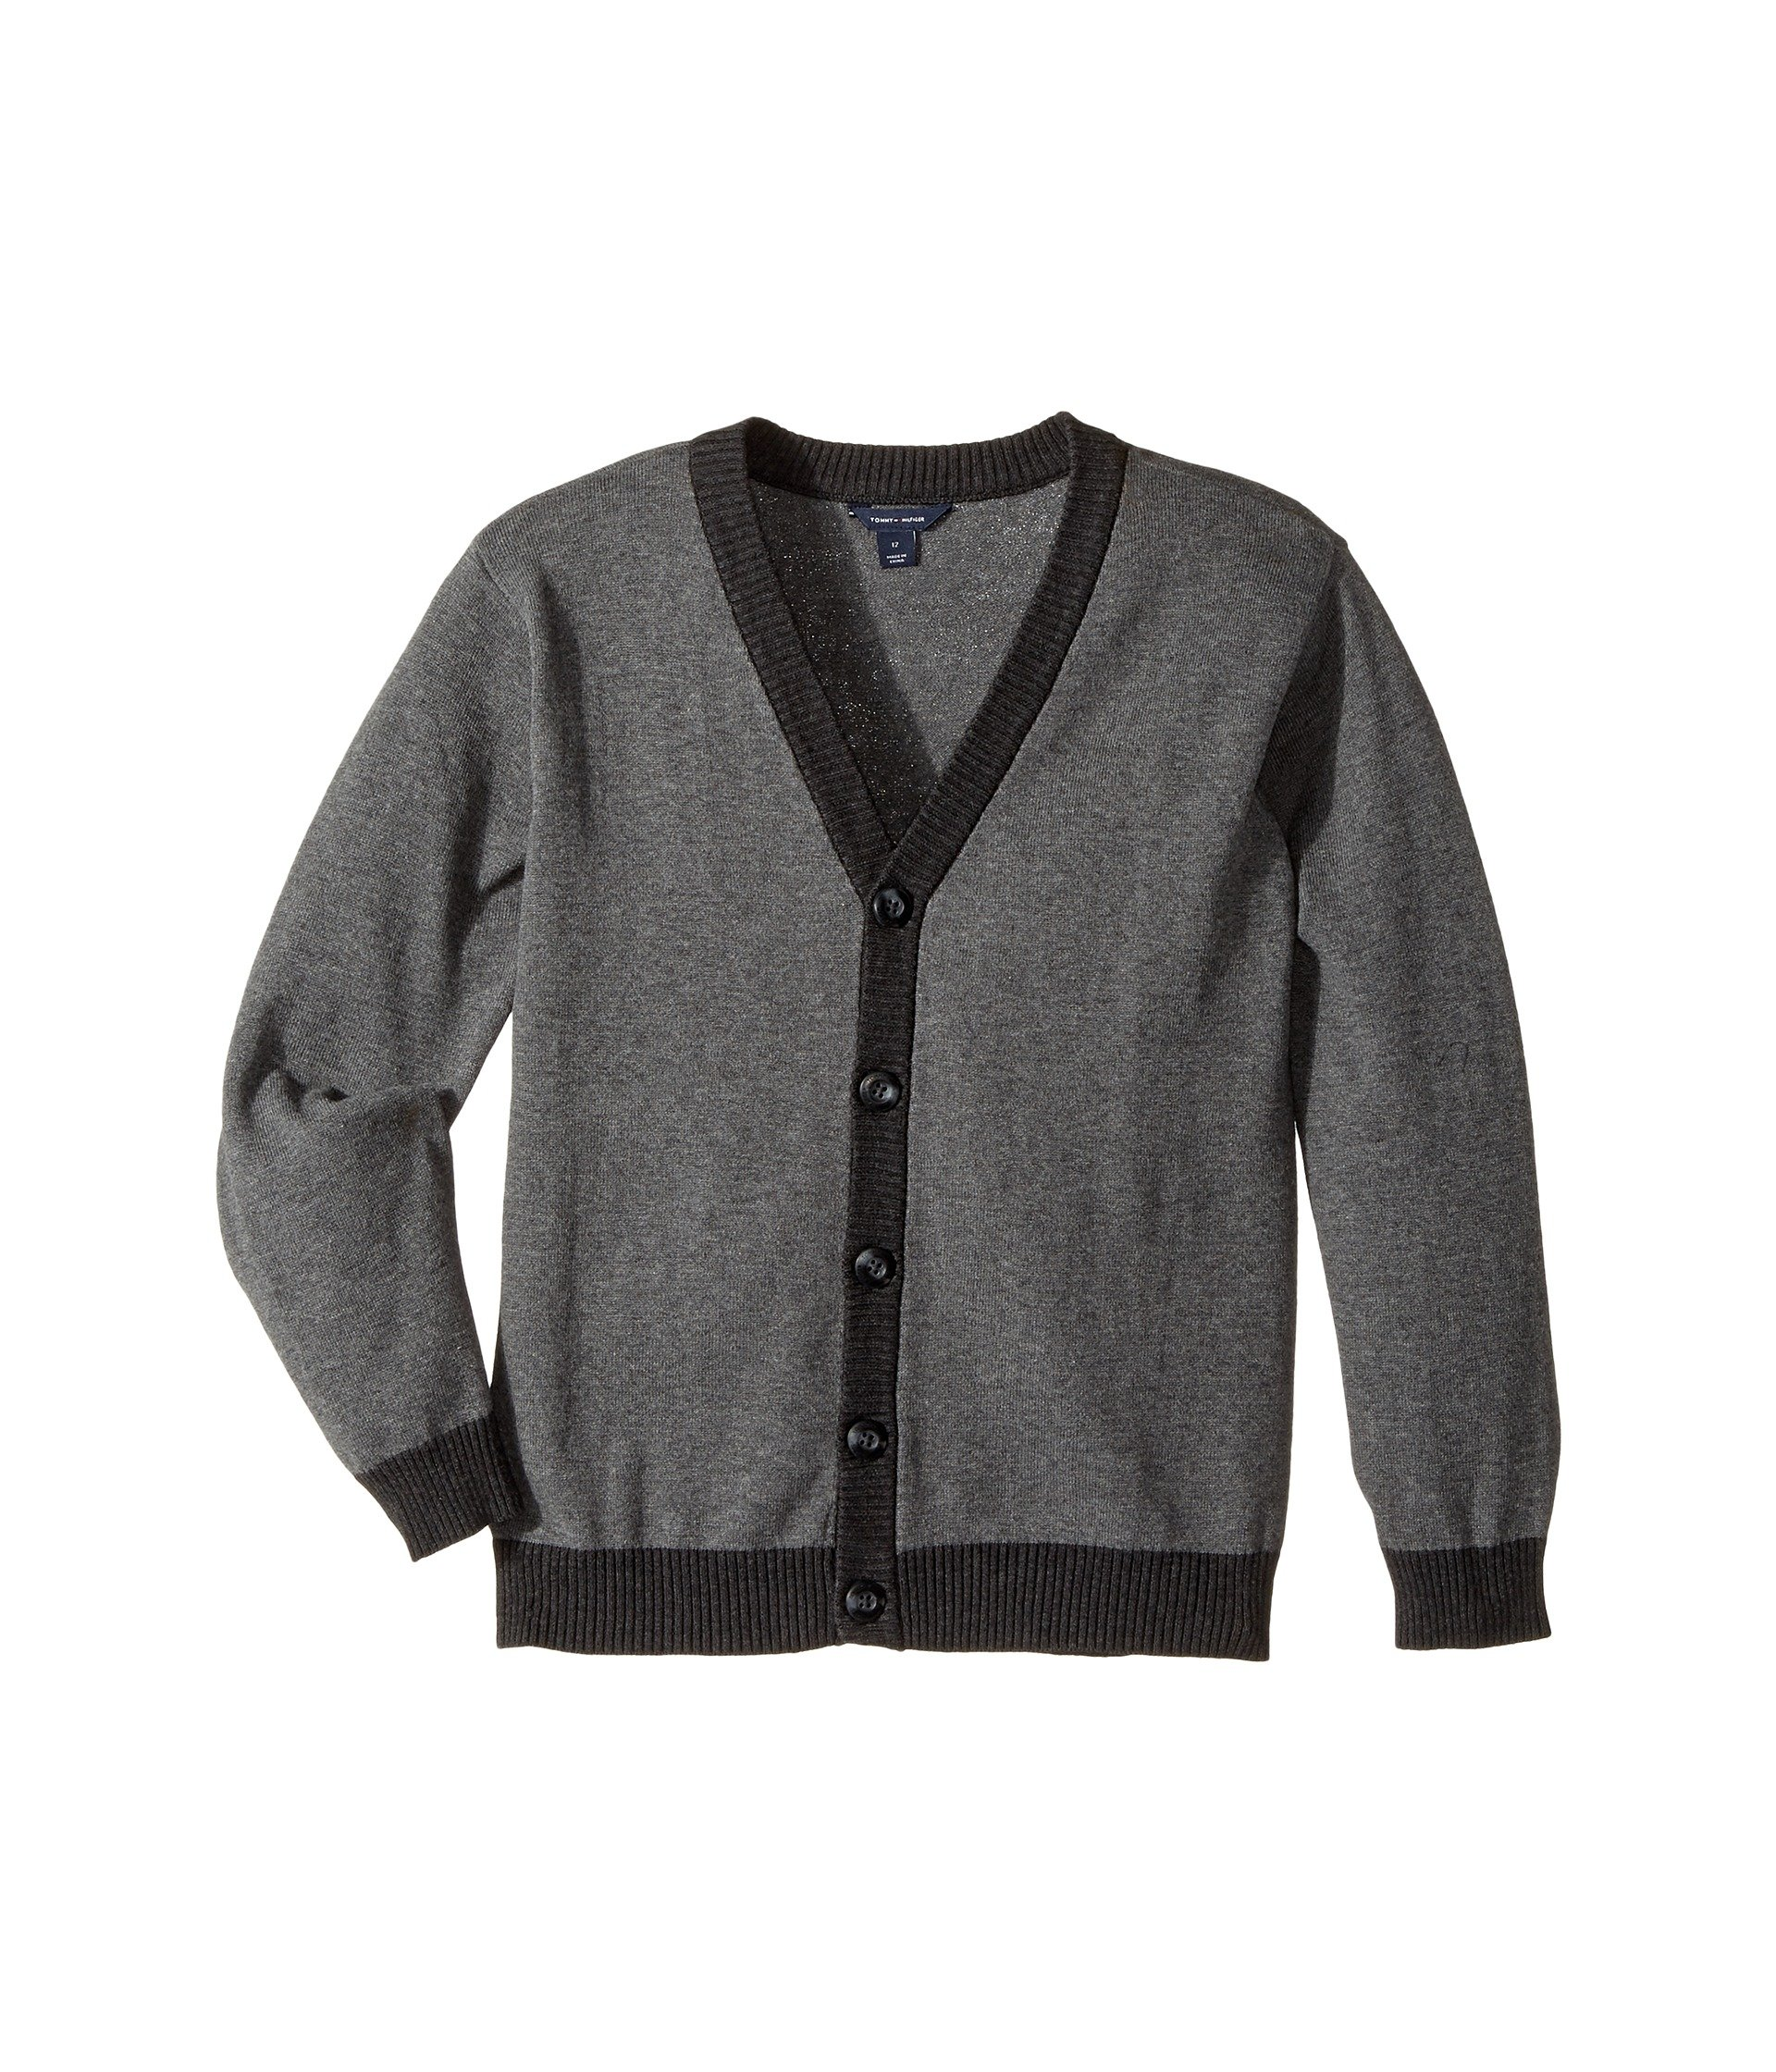 Tommy Hilfiger Kids Cardigan Sweater (Big Kids) at 6pm